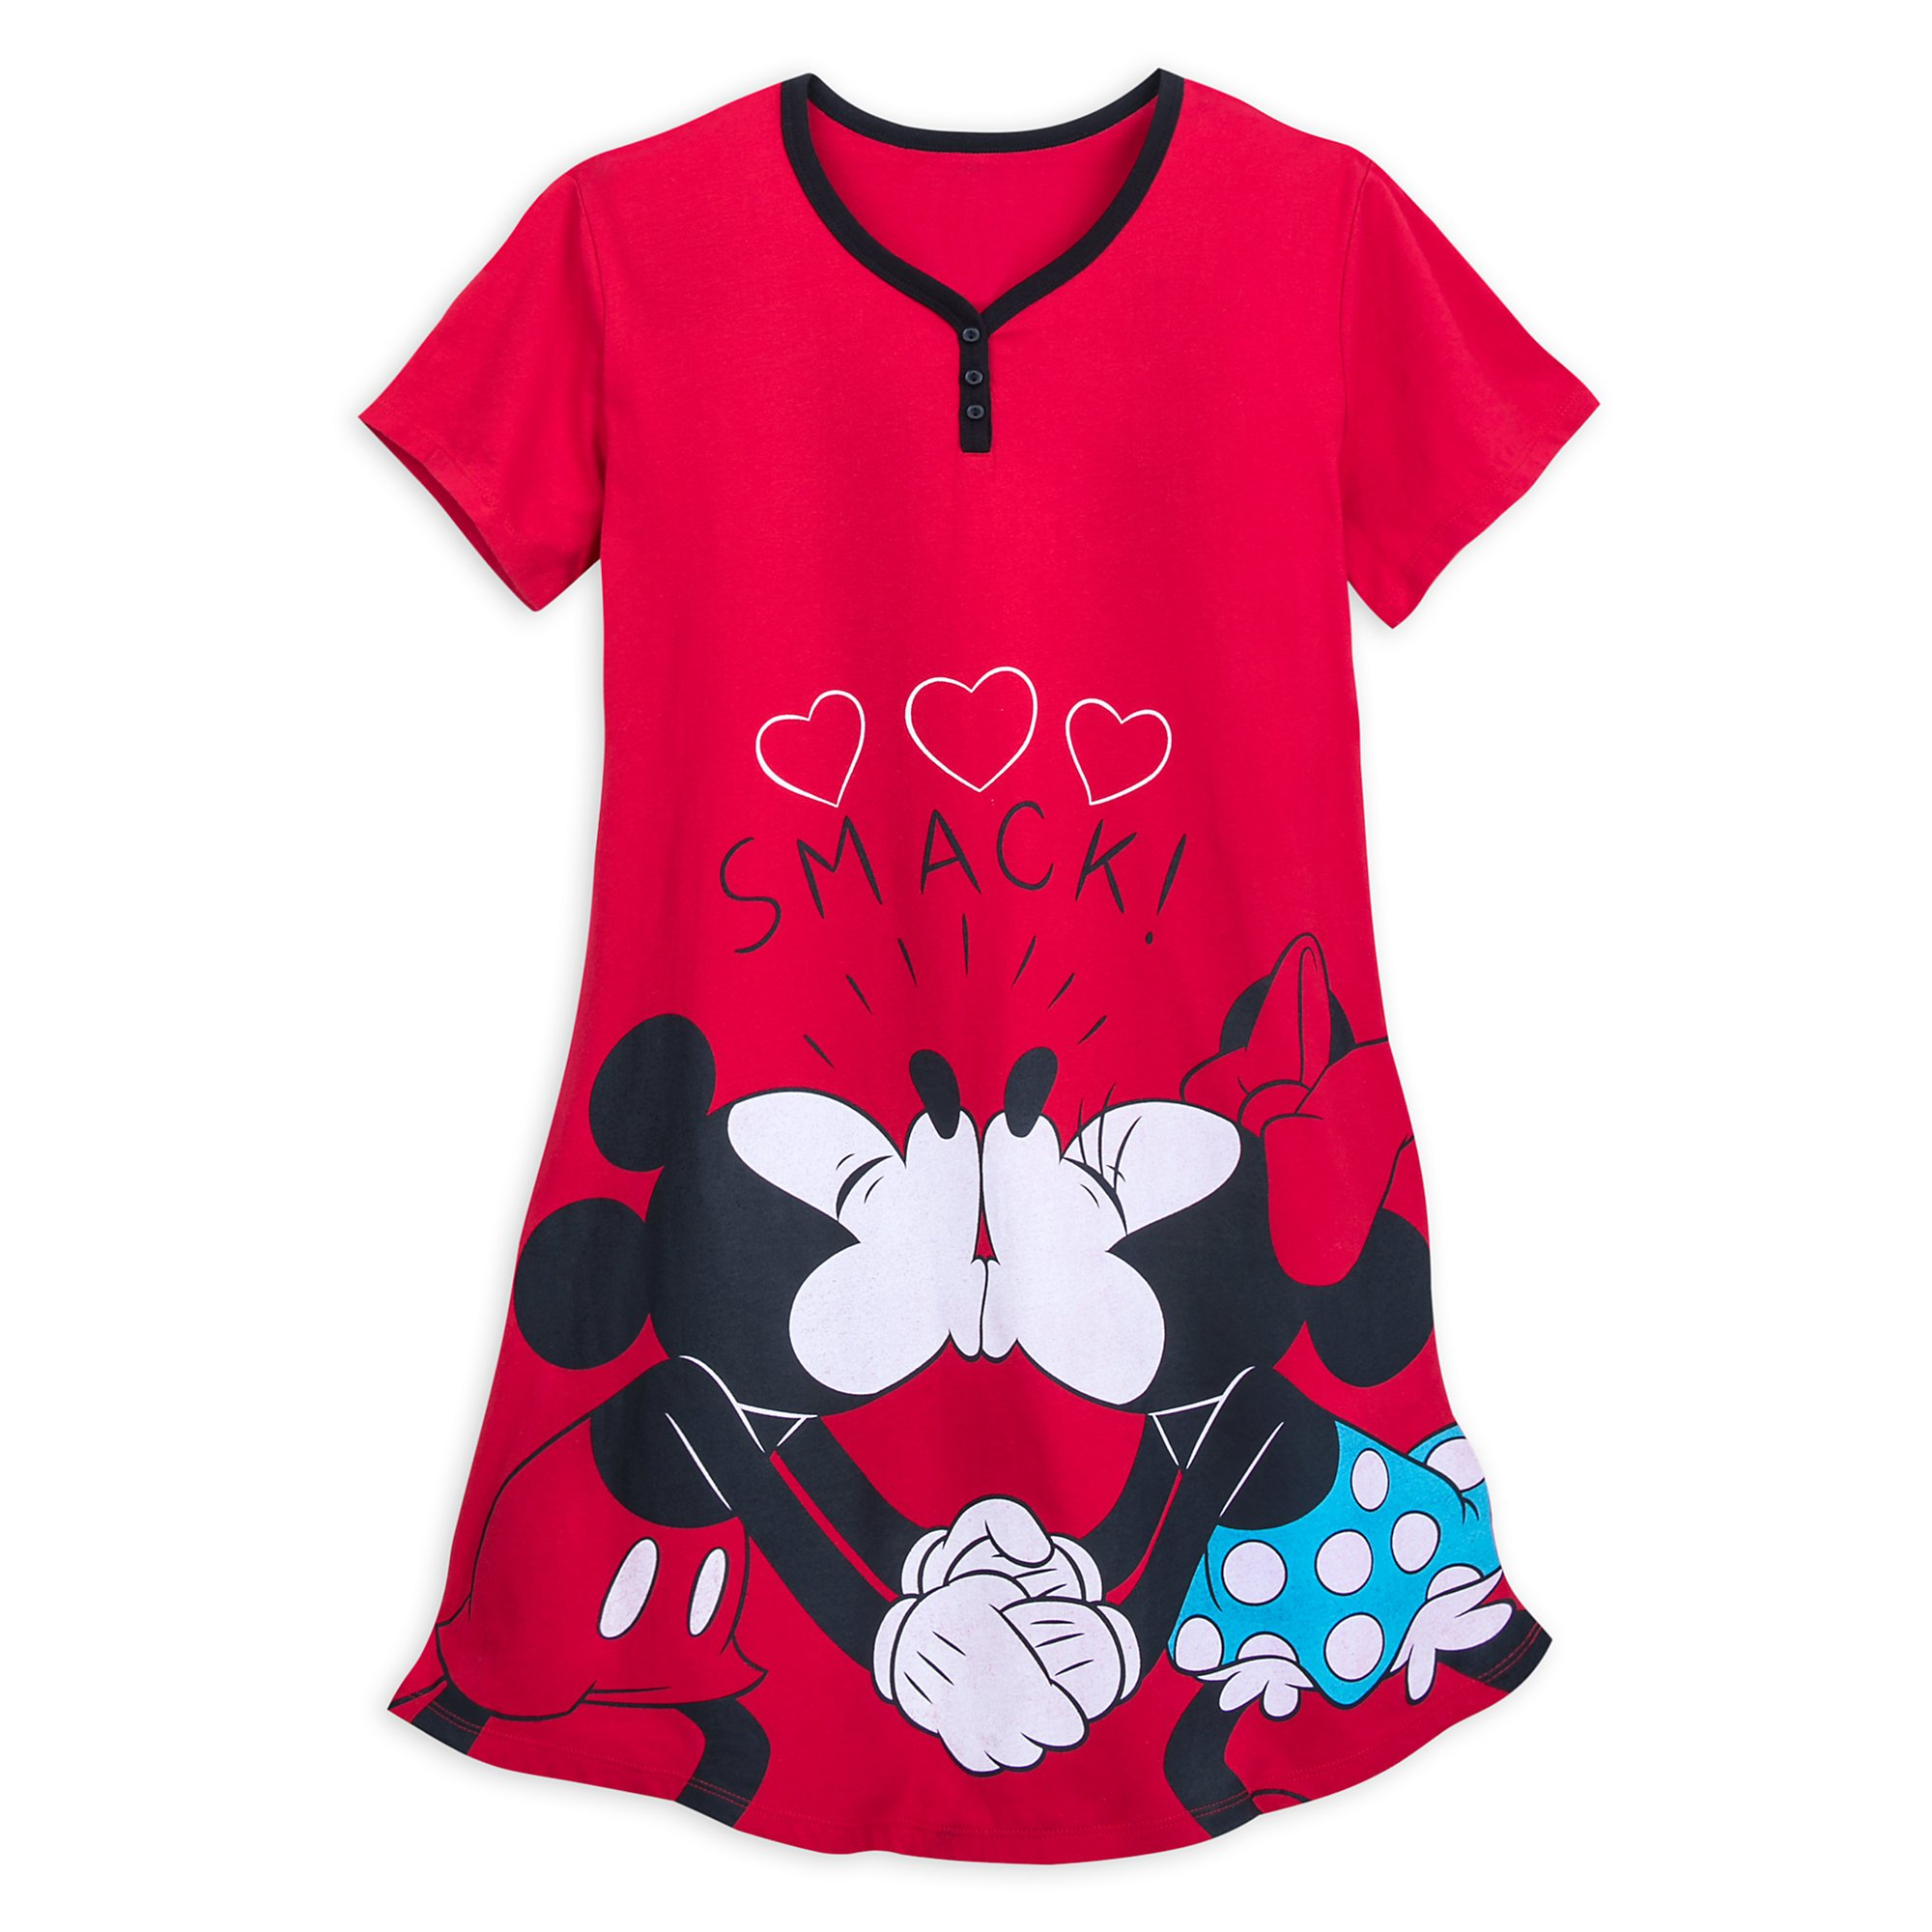 Disney Mickey and Minnie Mouse Nightshirt for Women Size Ladies 3XL Multi